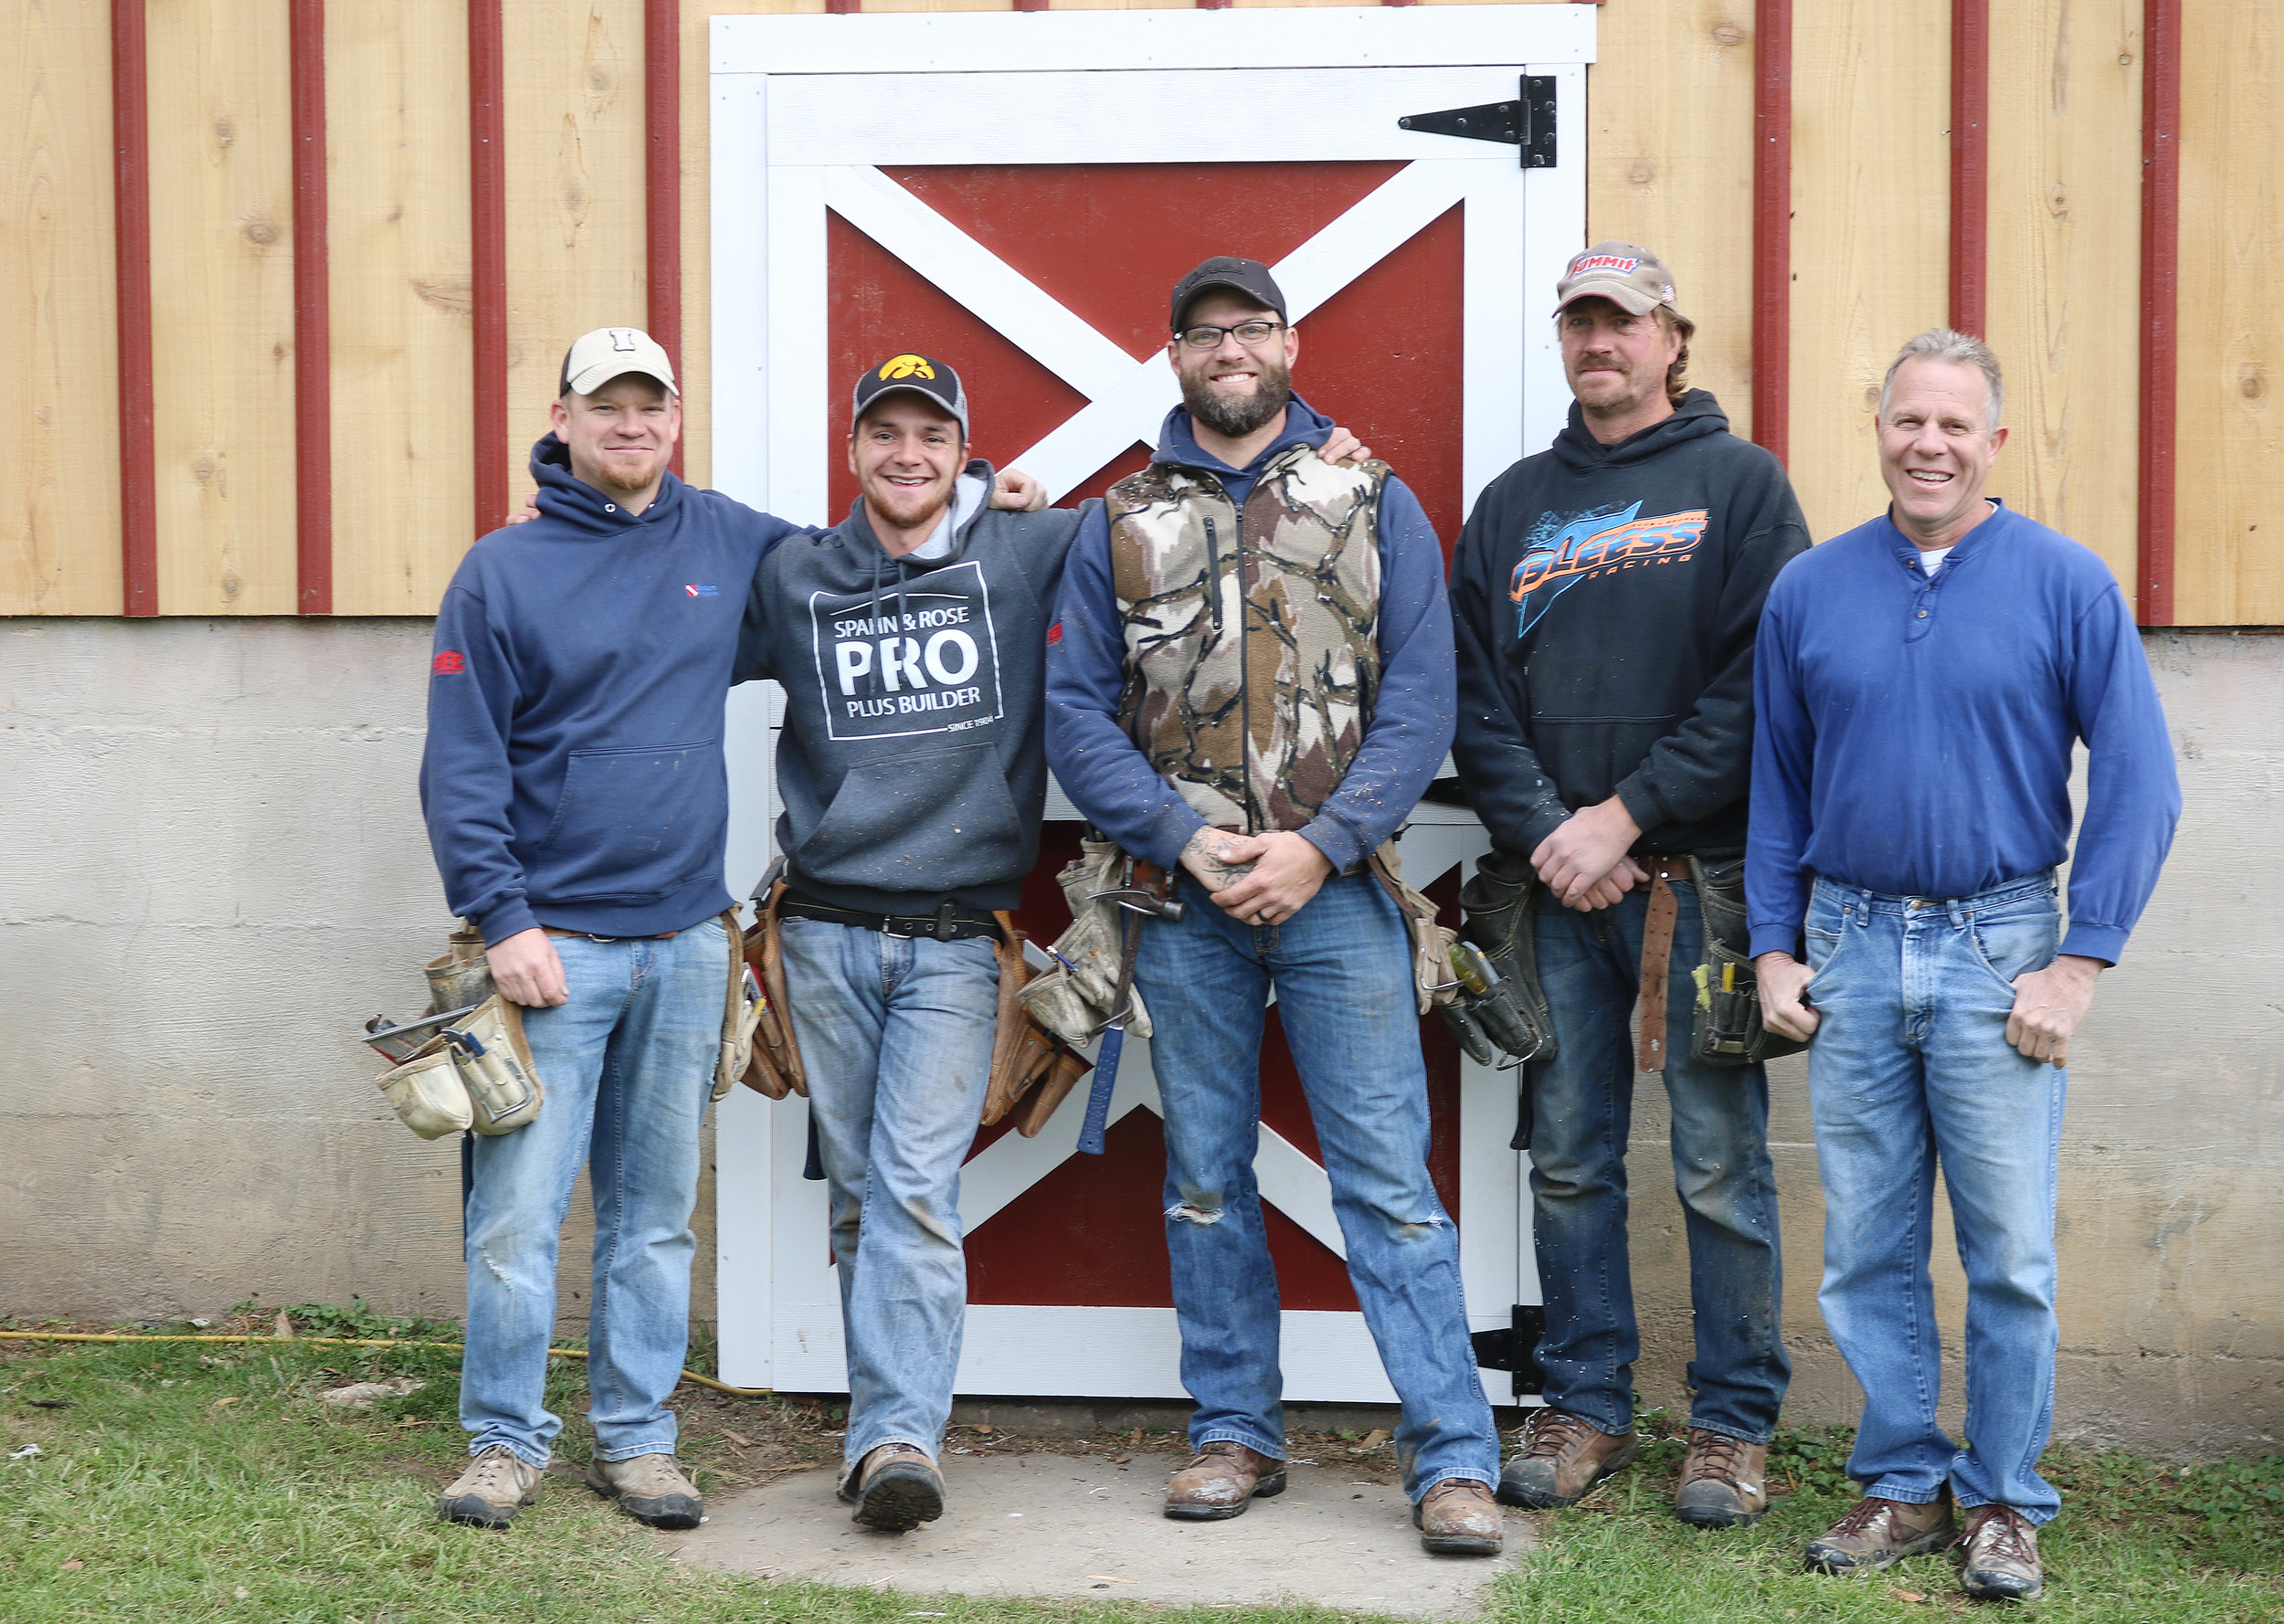 Steve Munkel (far right), owner of Munkel Construction, poses with his crew outside the barn at Heritage Farm in October.